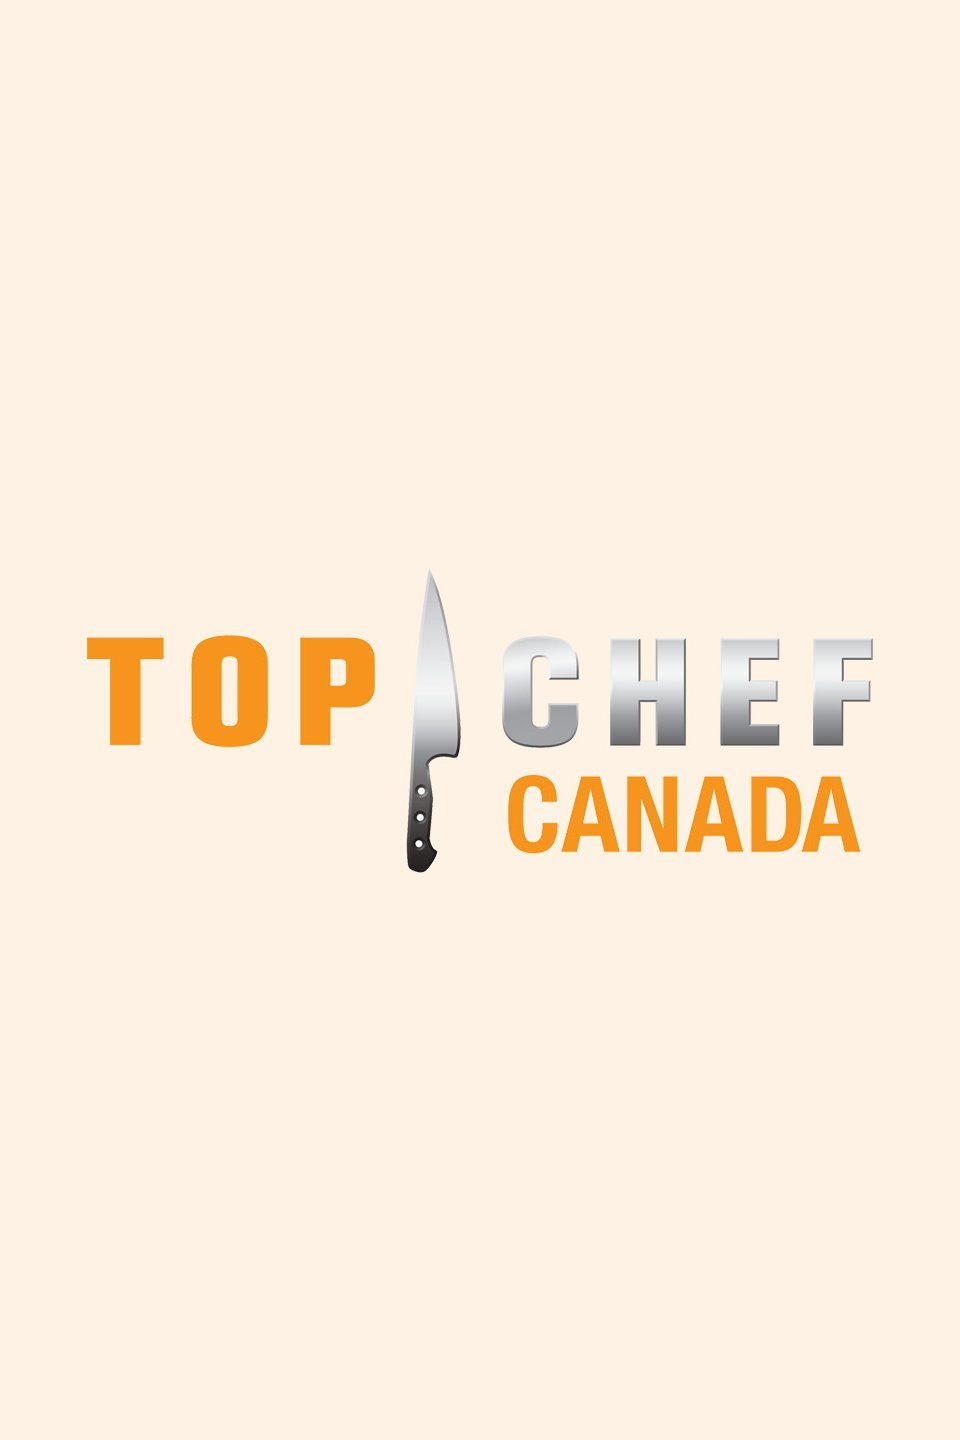 Top Chef Canada Season 9